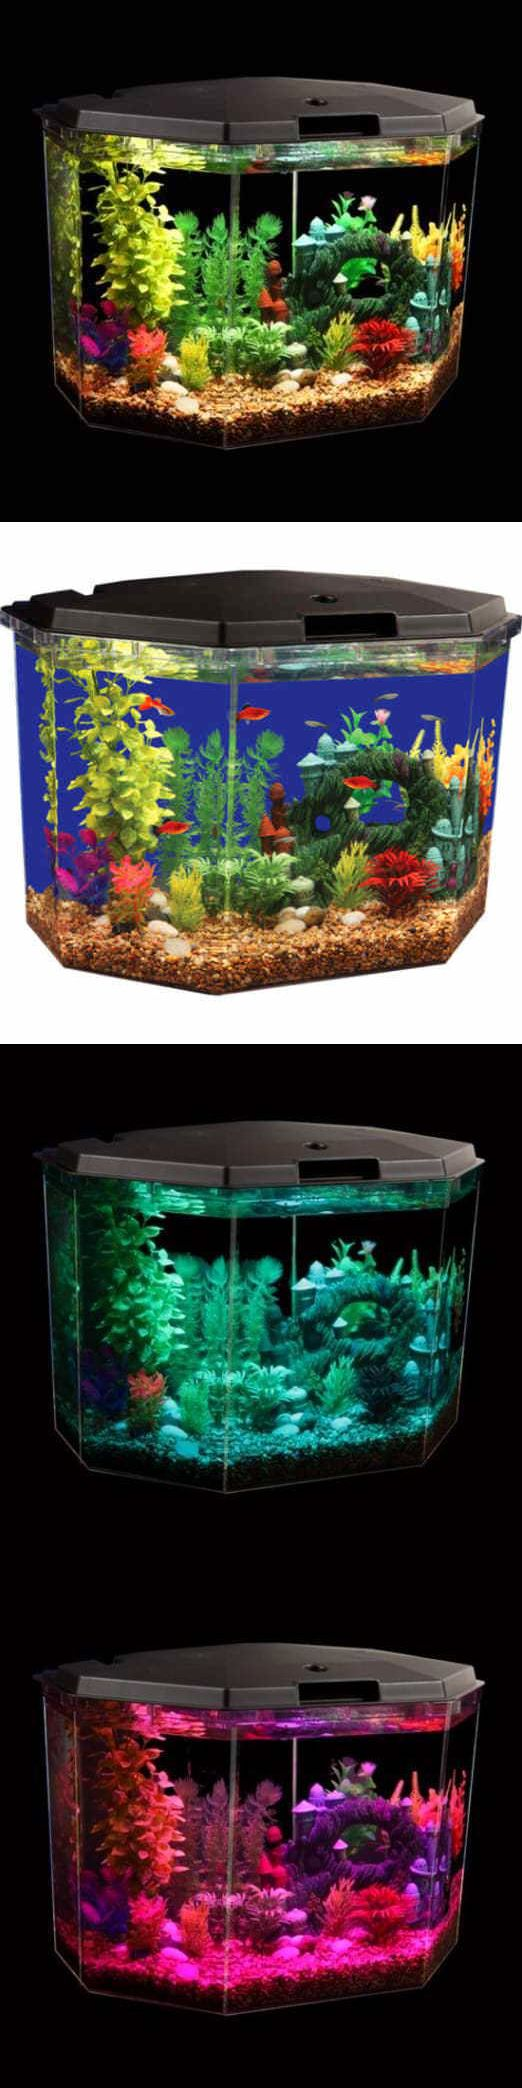 17 best ideas about aqua culture on pinterest 1 gallon for Hexagon fish tank lid